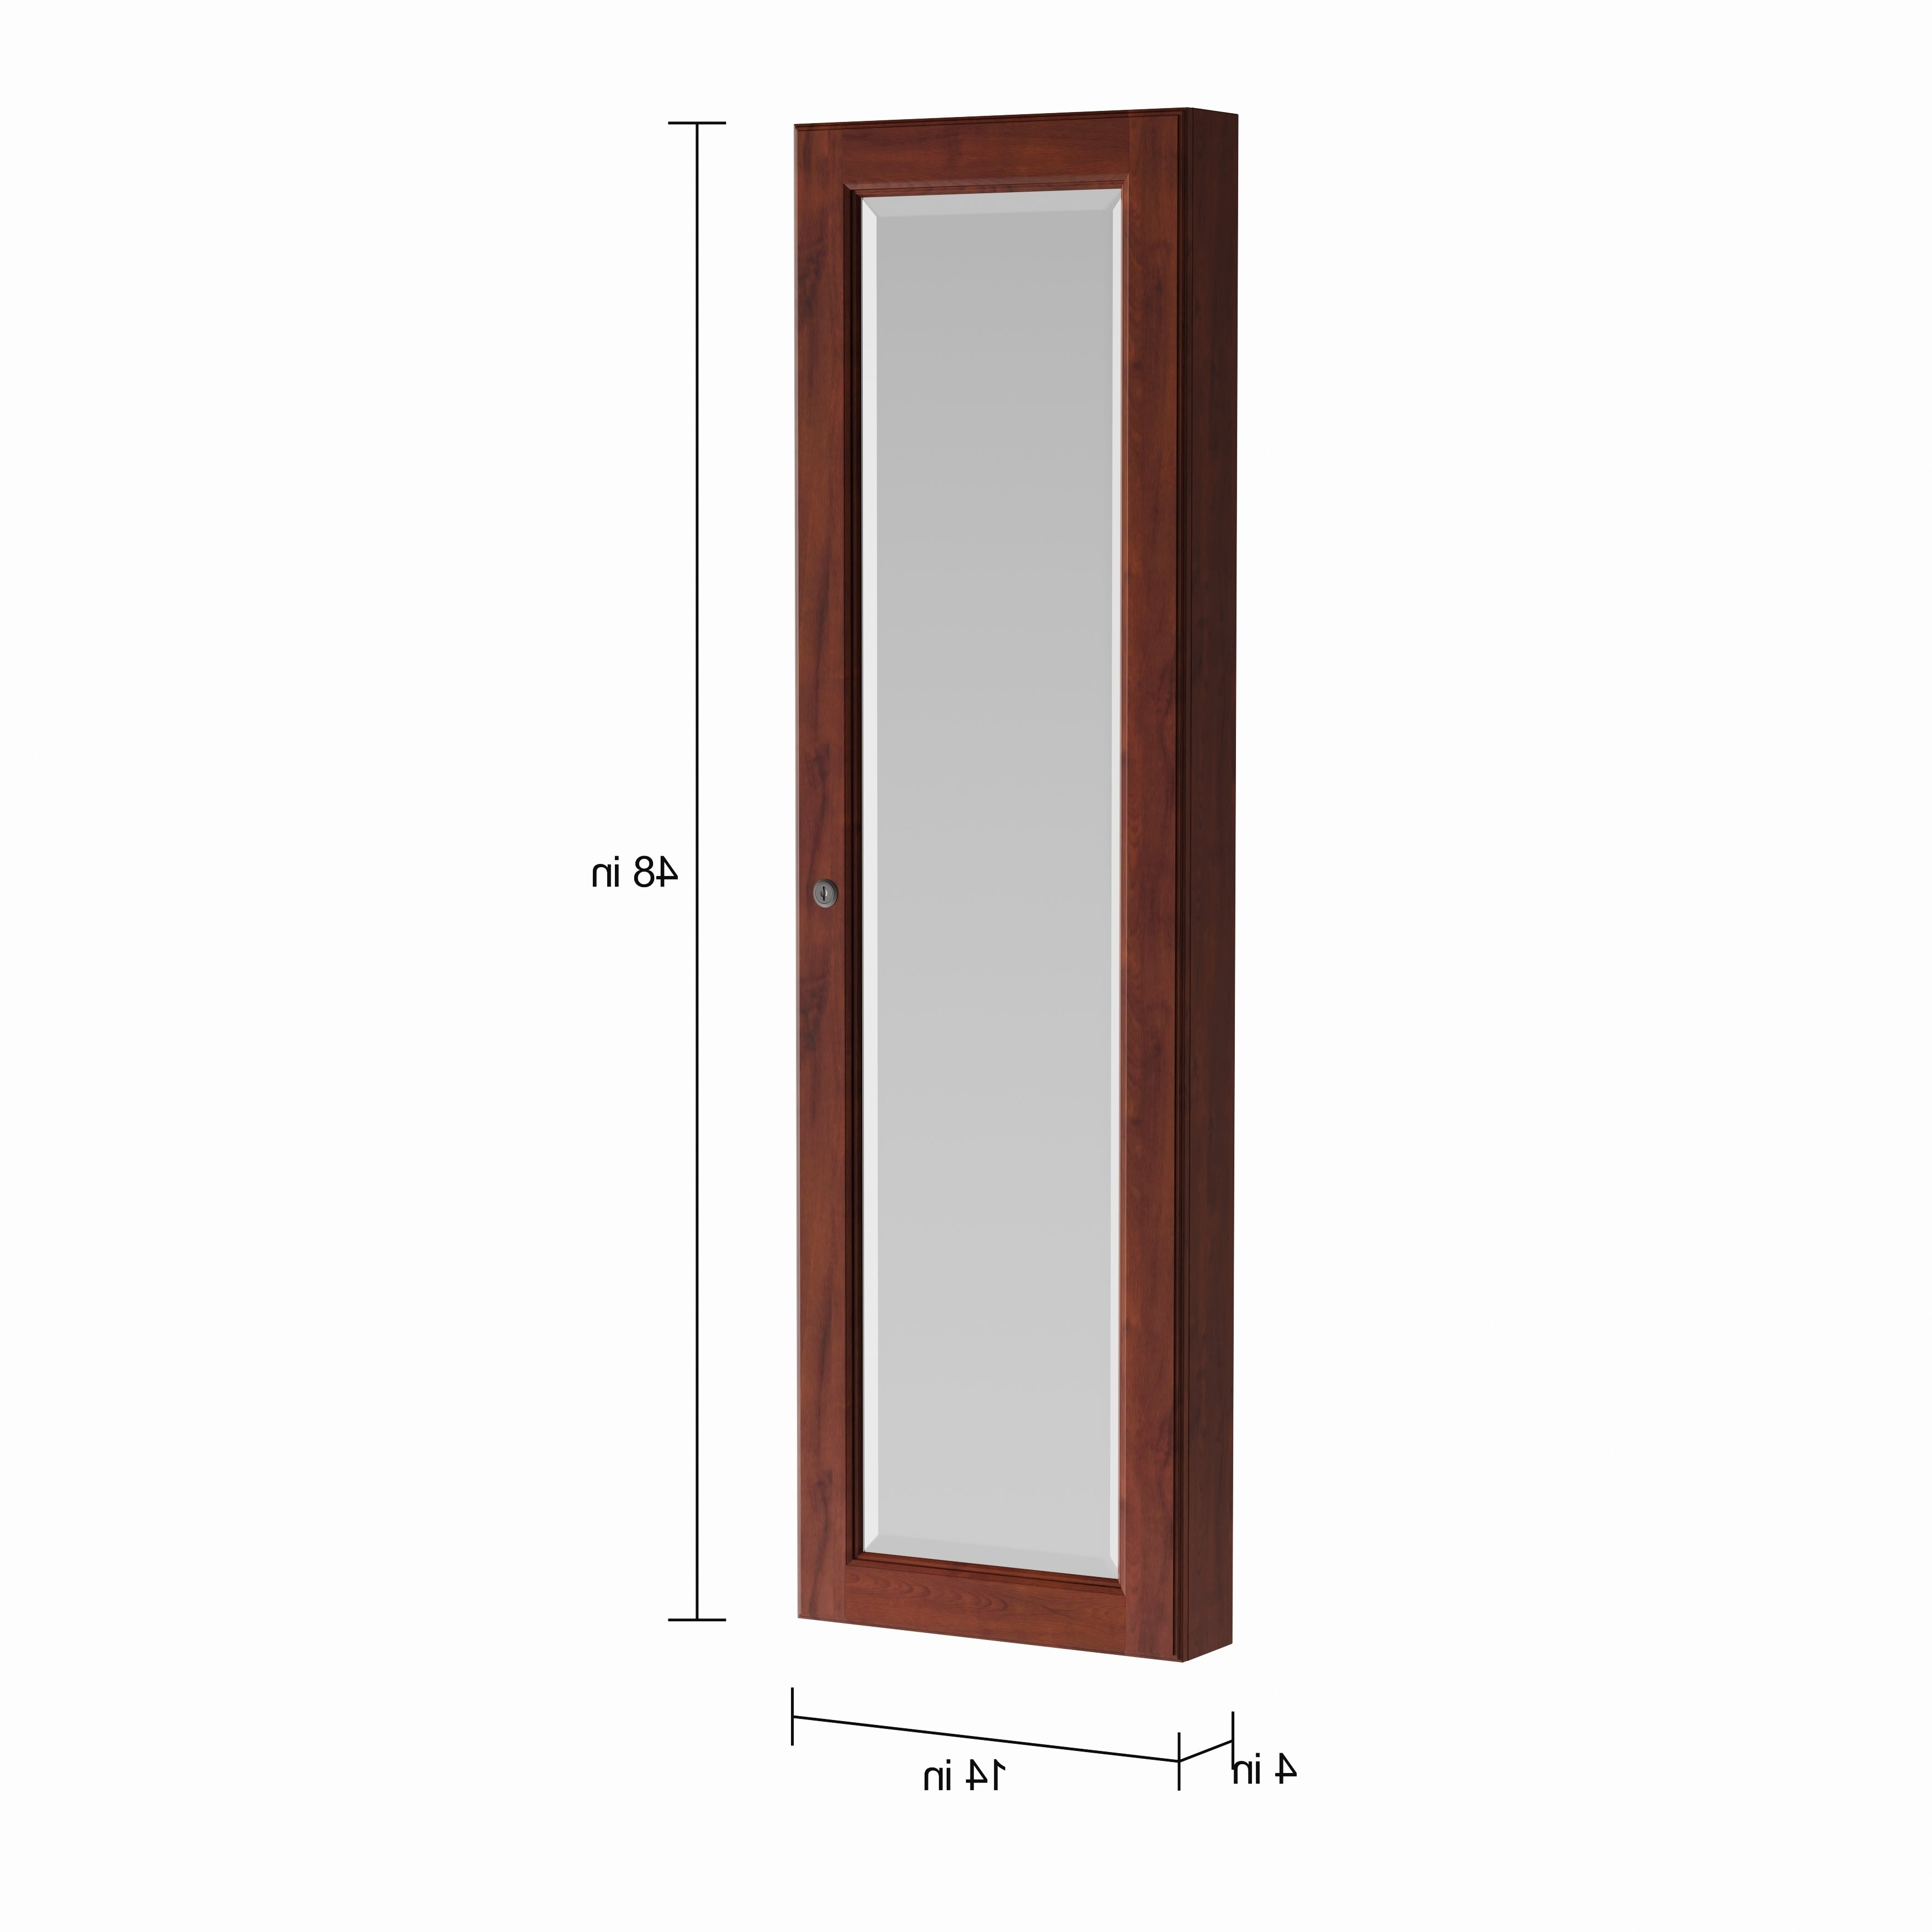 Widely Used Jewelry Wall Mirrors For Copper Grove Galax Wall Mount Burgundy Cherry Jewelry Mirror (Gallery 19 of 20)